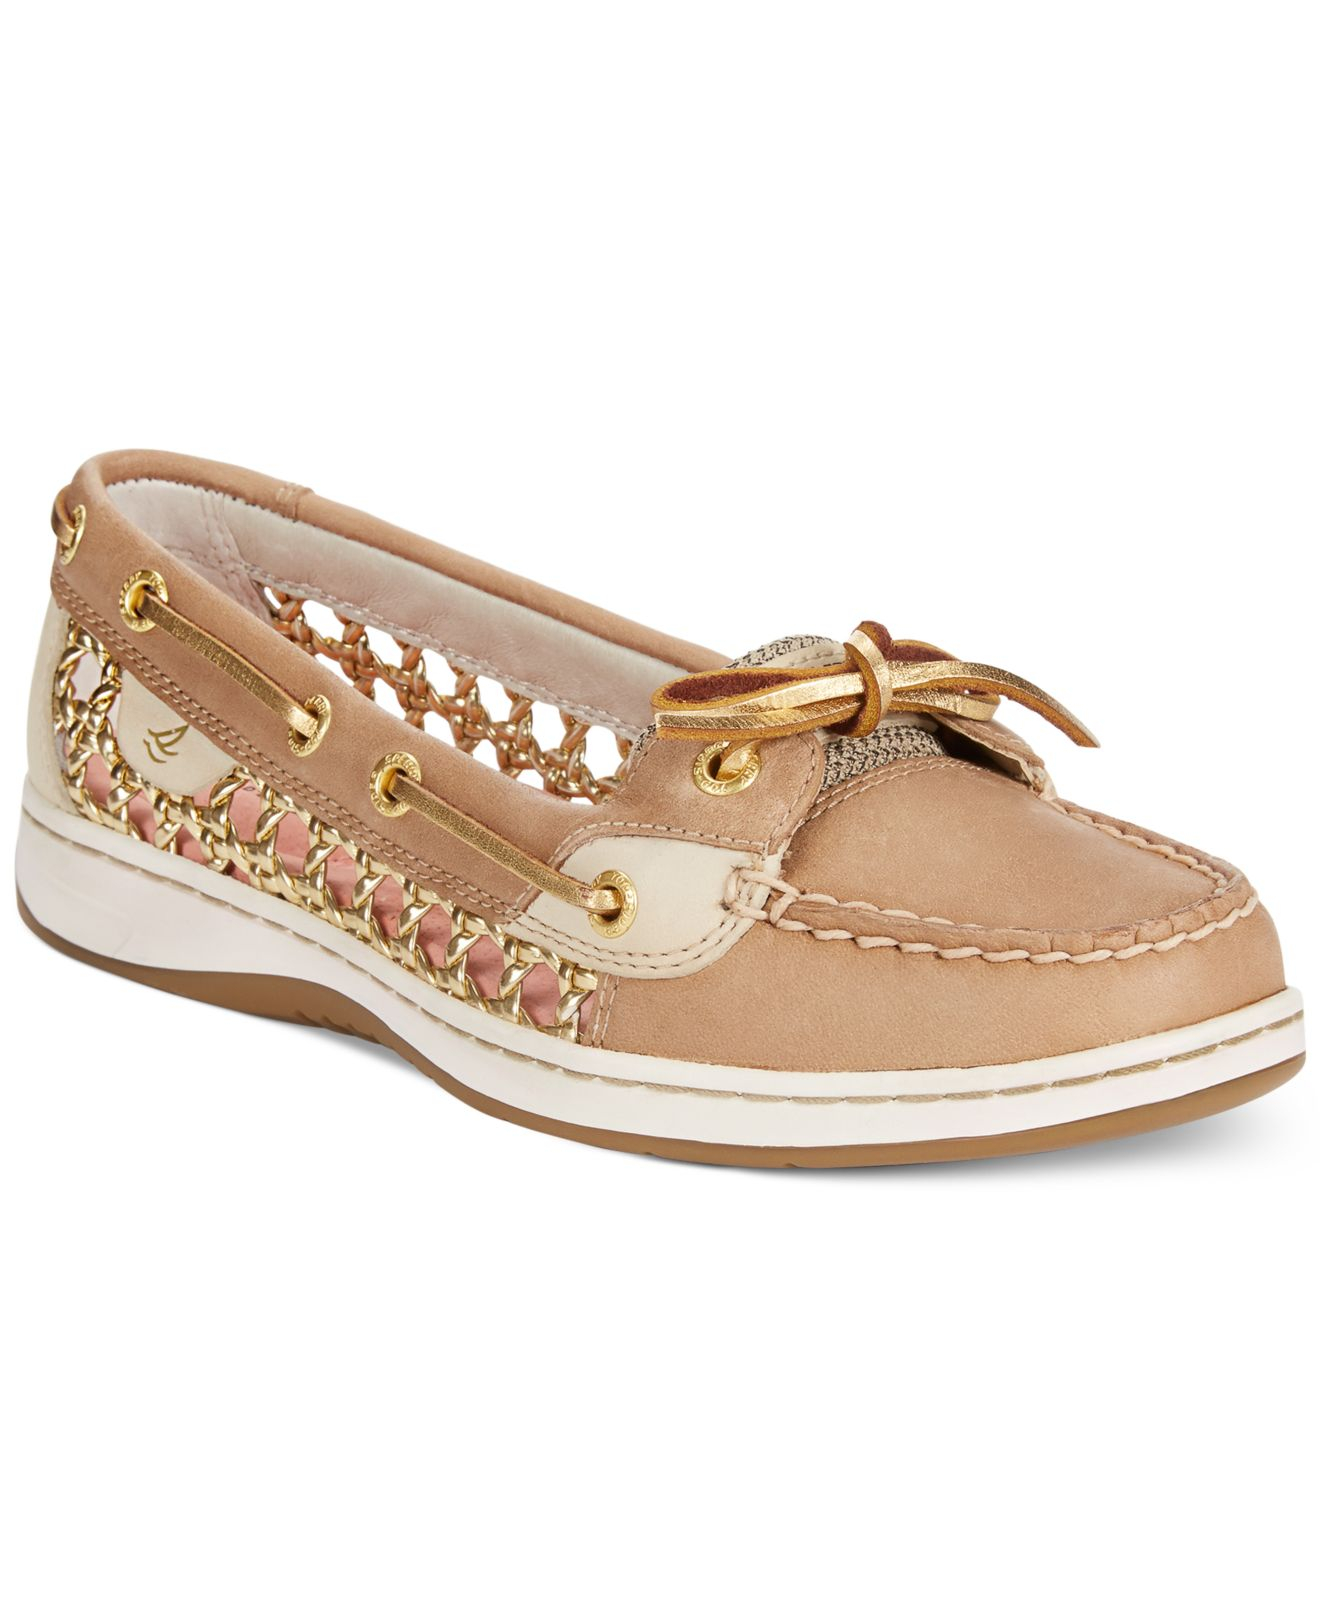 Sperry Top Sider Angelfish Shoes